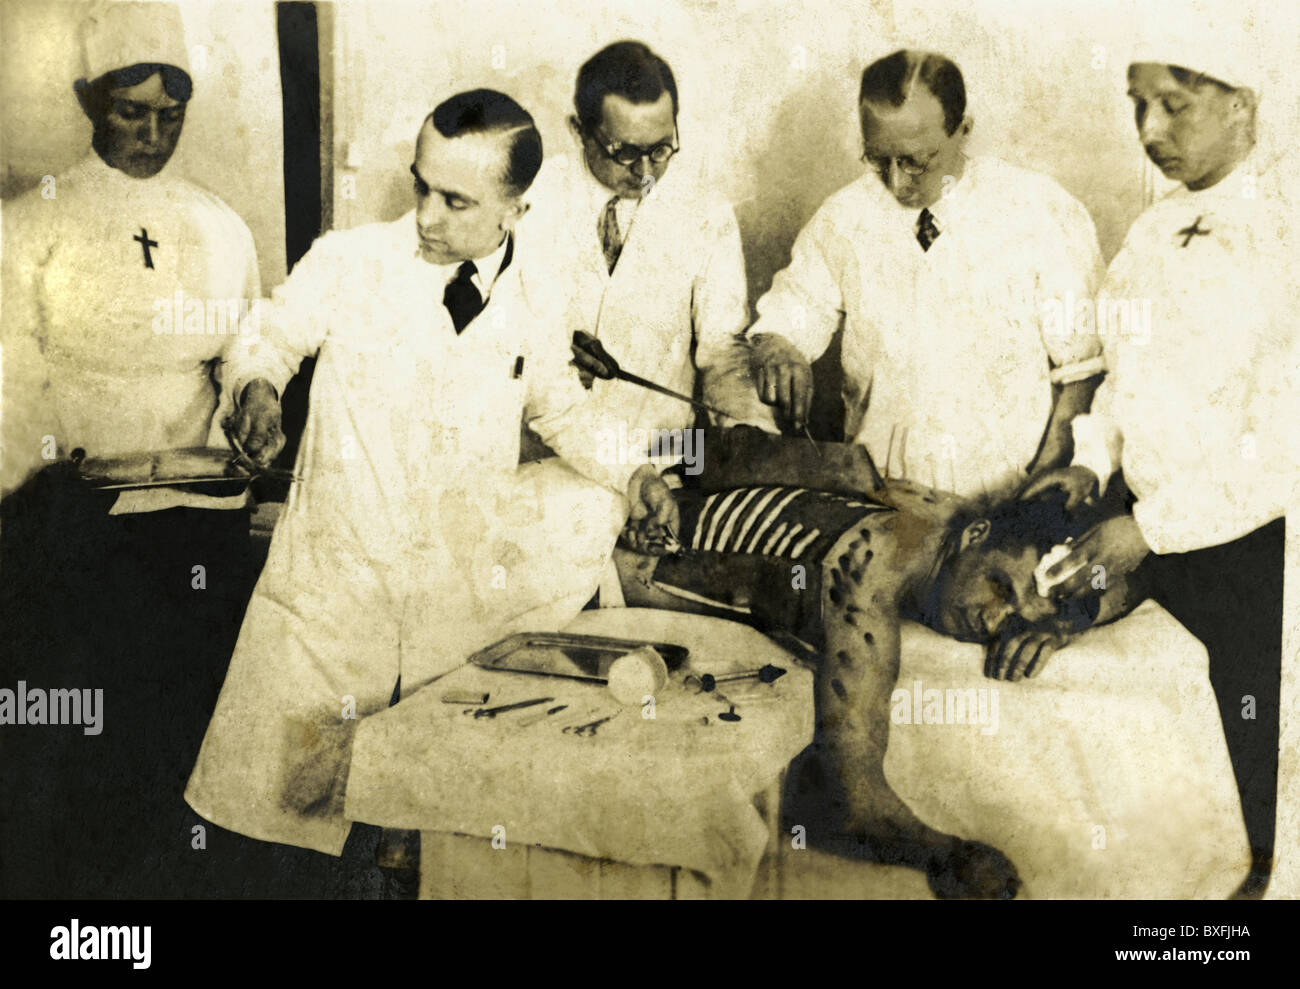 medicine, surgery, surgeon open a thorax, patient on operating table, Germany, circa 1918, Additional-Rights-Clearences - Stock Image